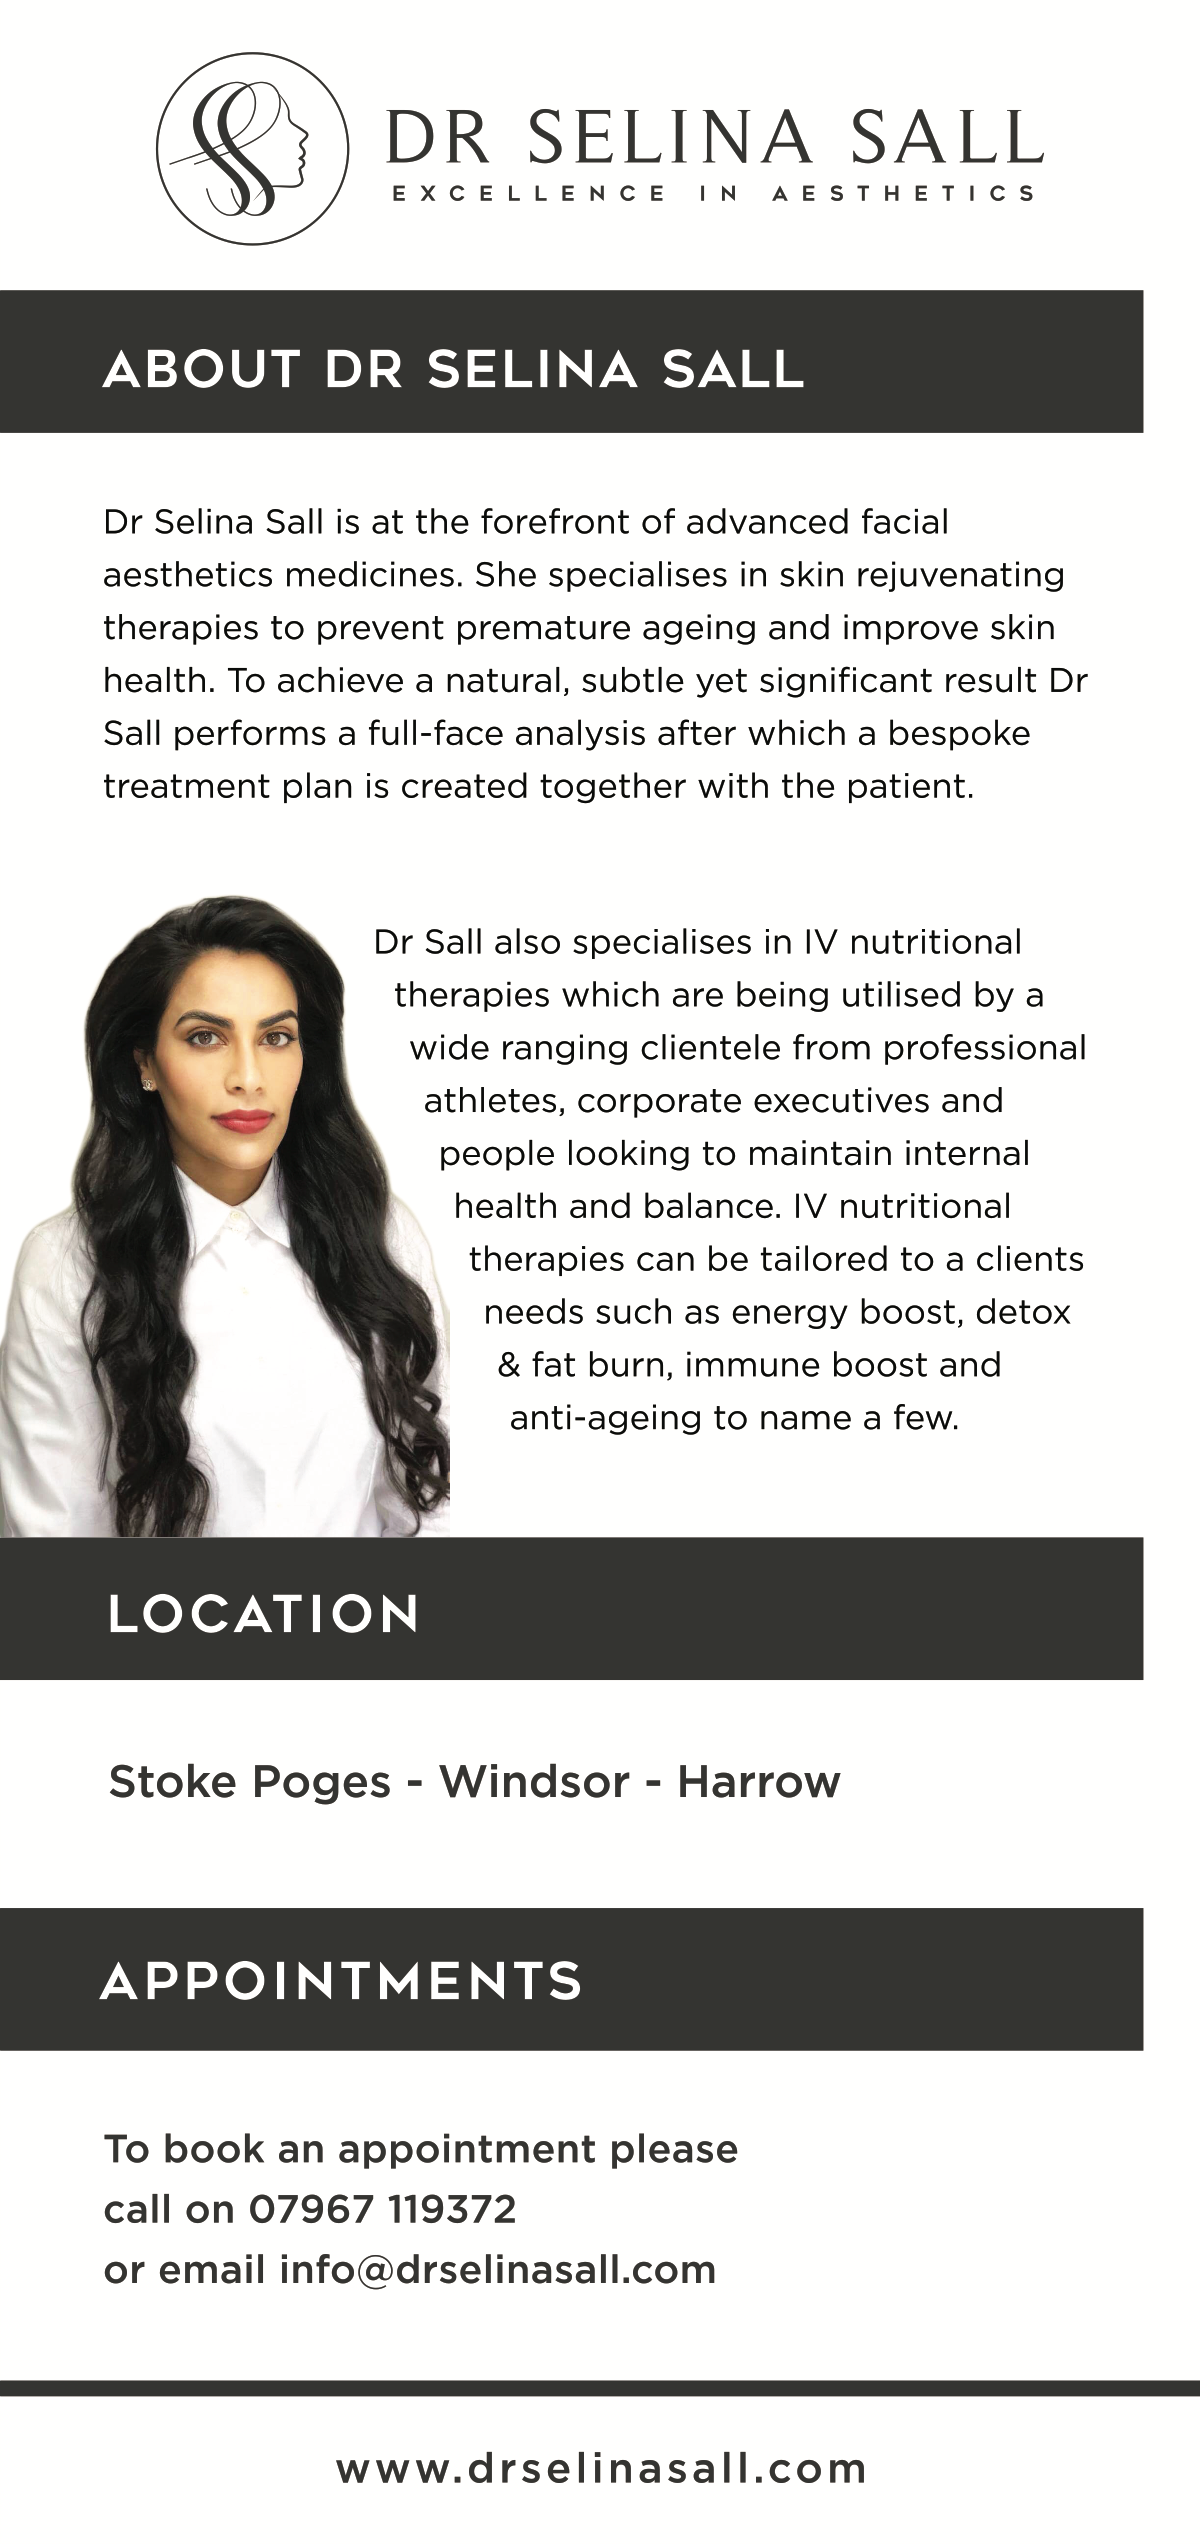 A flyer for facial aesthetics company to be used to advertise via mail